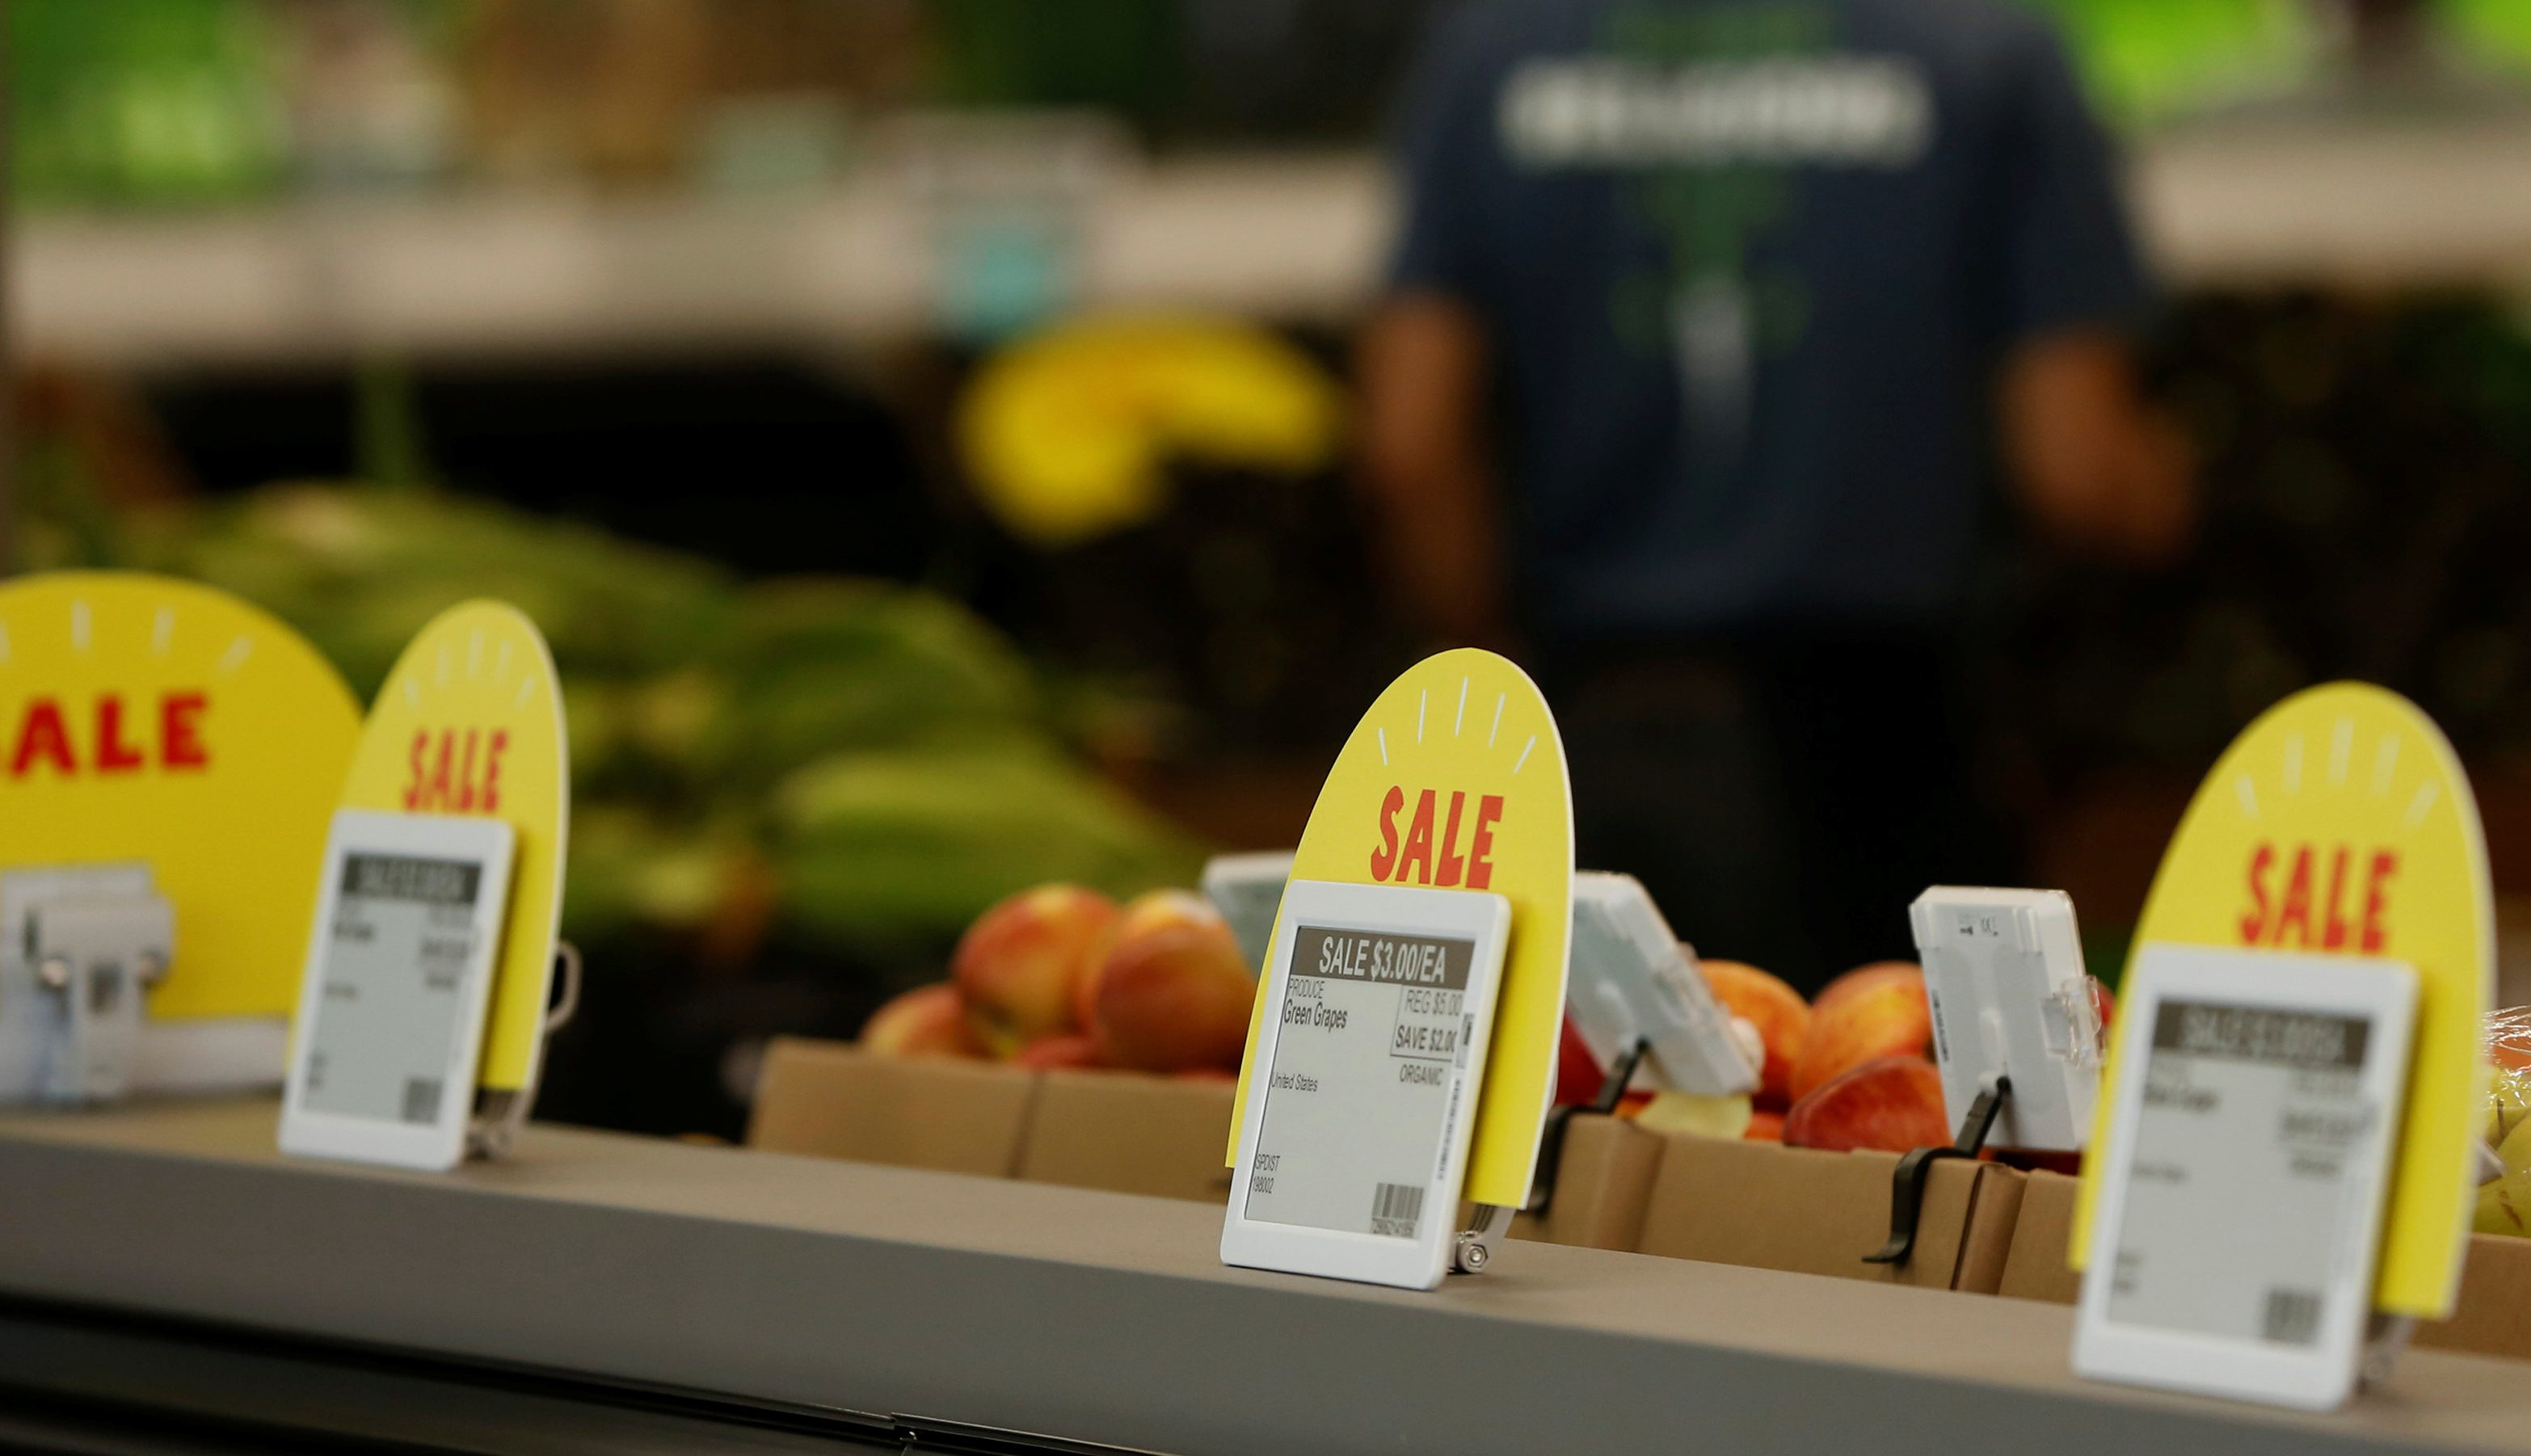 Instacart is struggling to get its Uber-for-groceries model